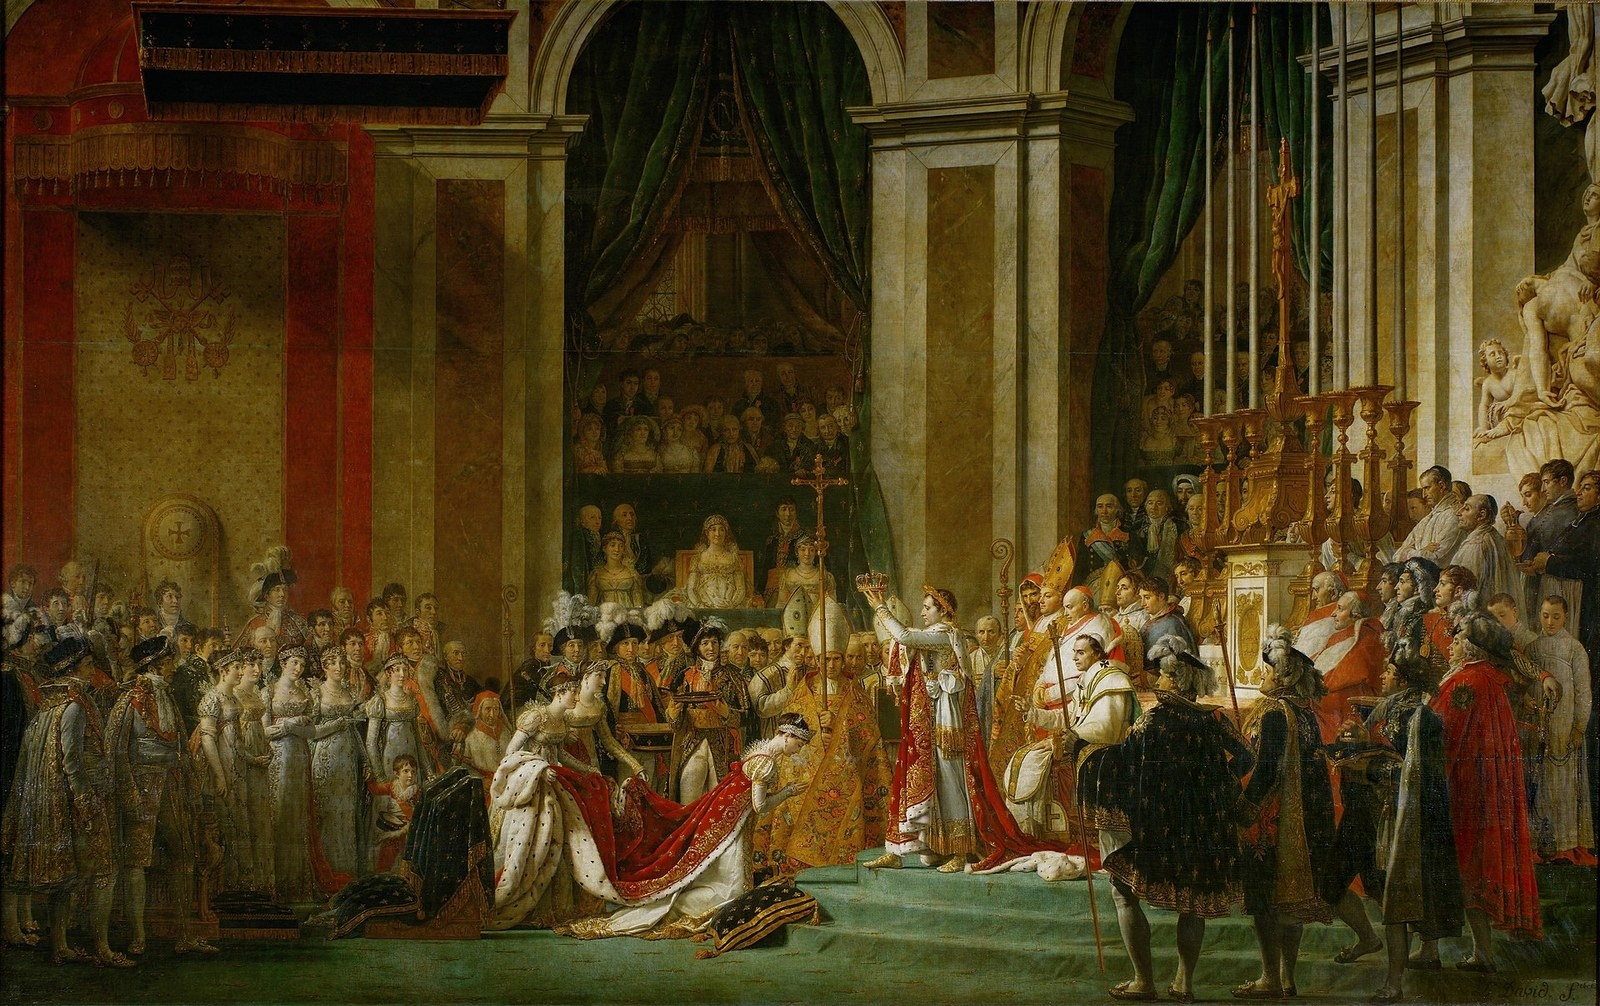 """""""The Coronation of Napoleon"""" (1807) by Jacques-Louis David, depicting the coronation of Napoleon I at Notre Dame in 1804."""